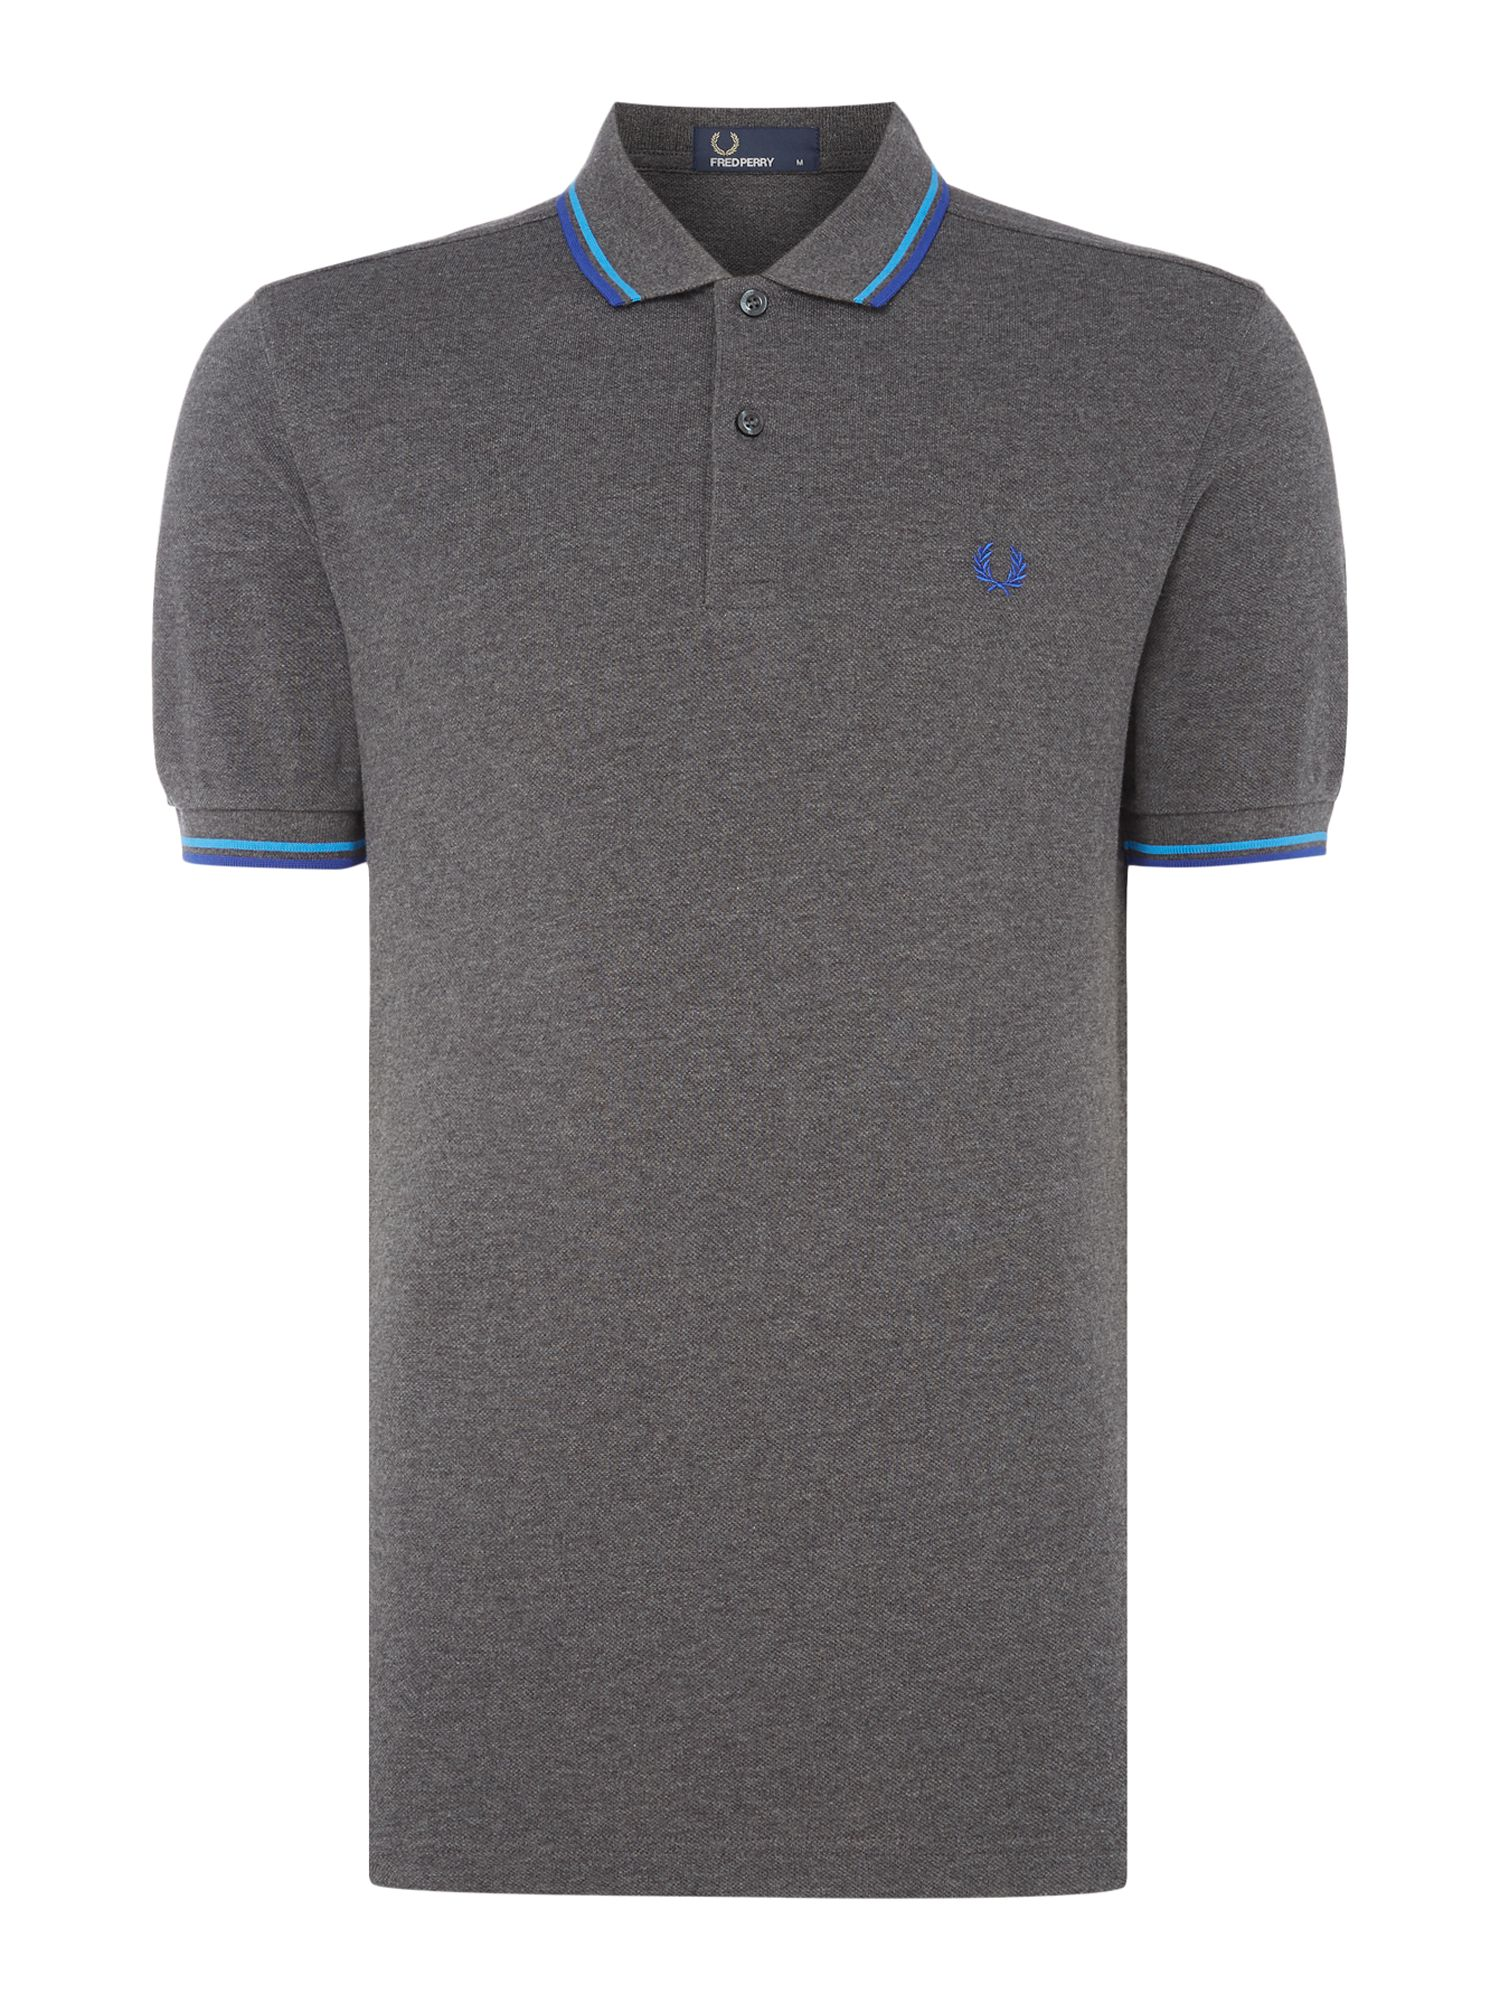 Men's Fred Perry Plain Twin Tipped Polo Shirt, Charcoal